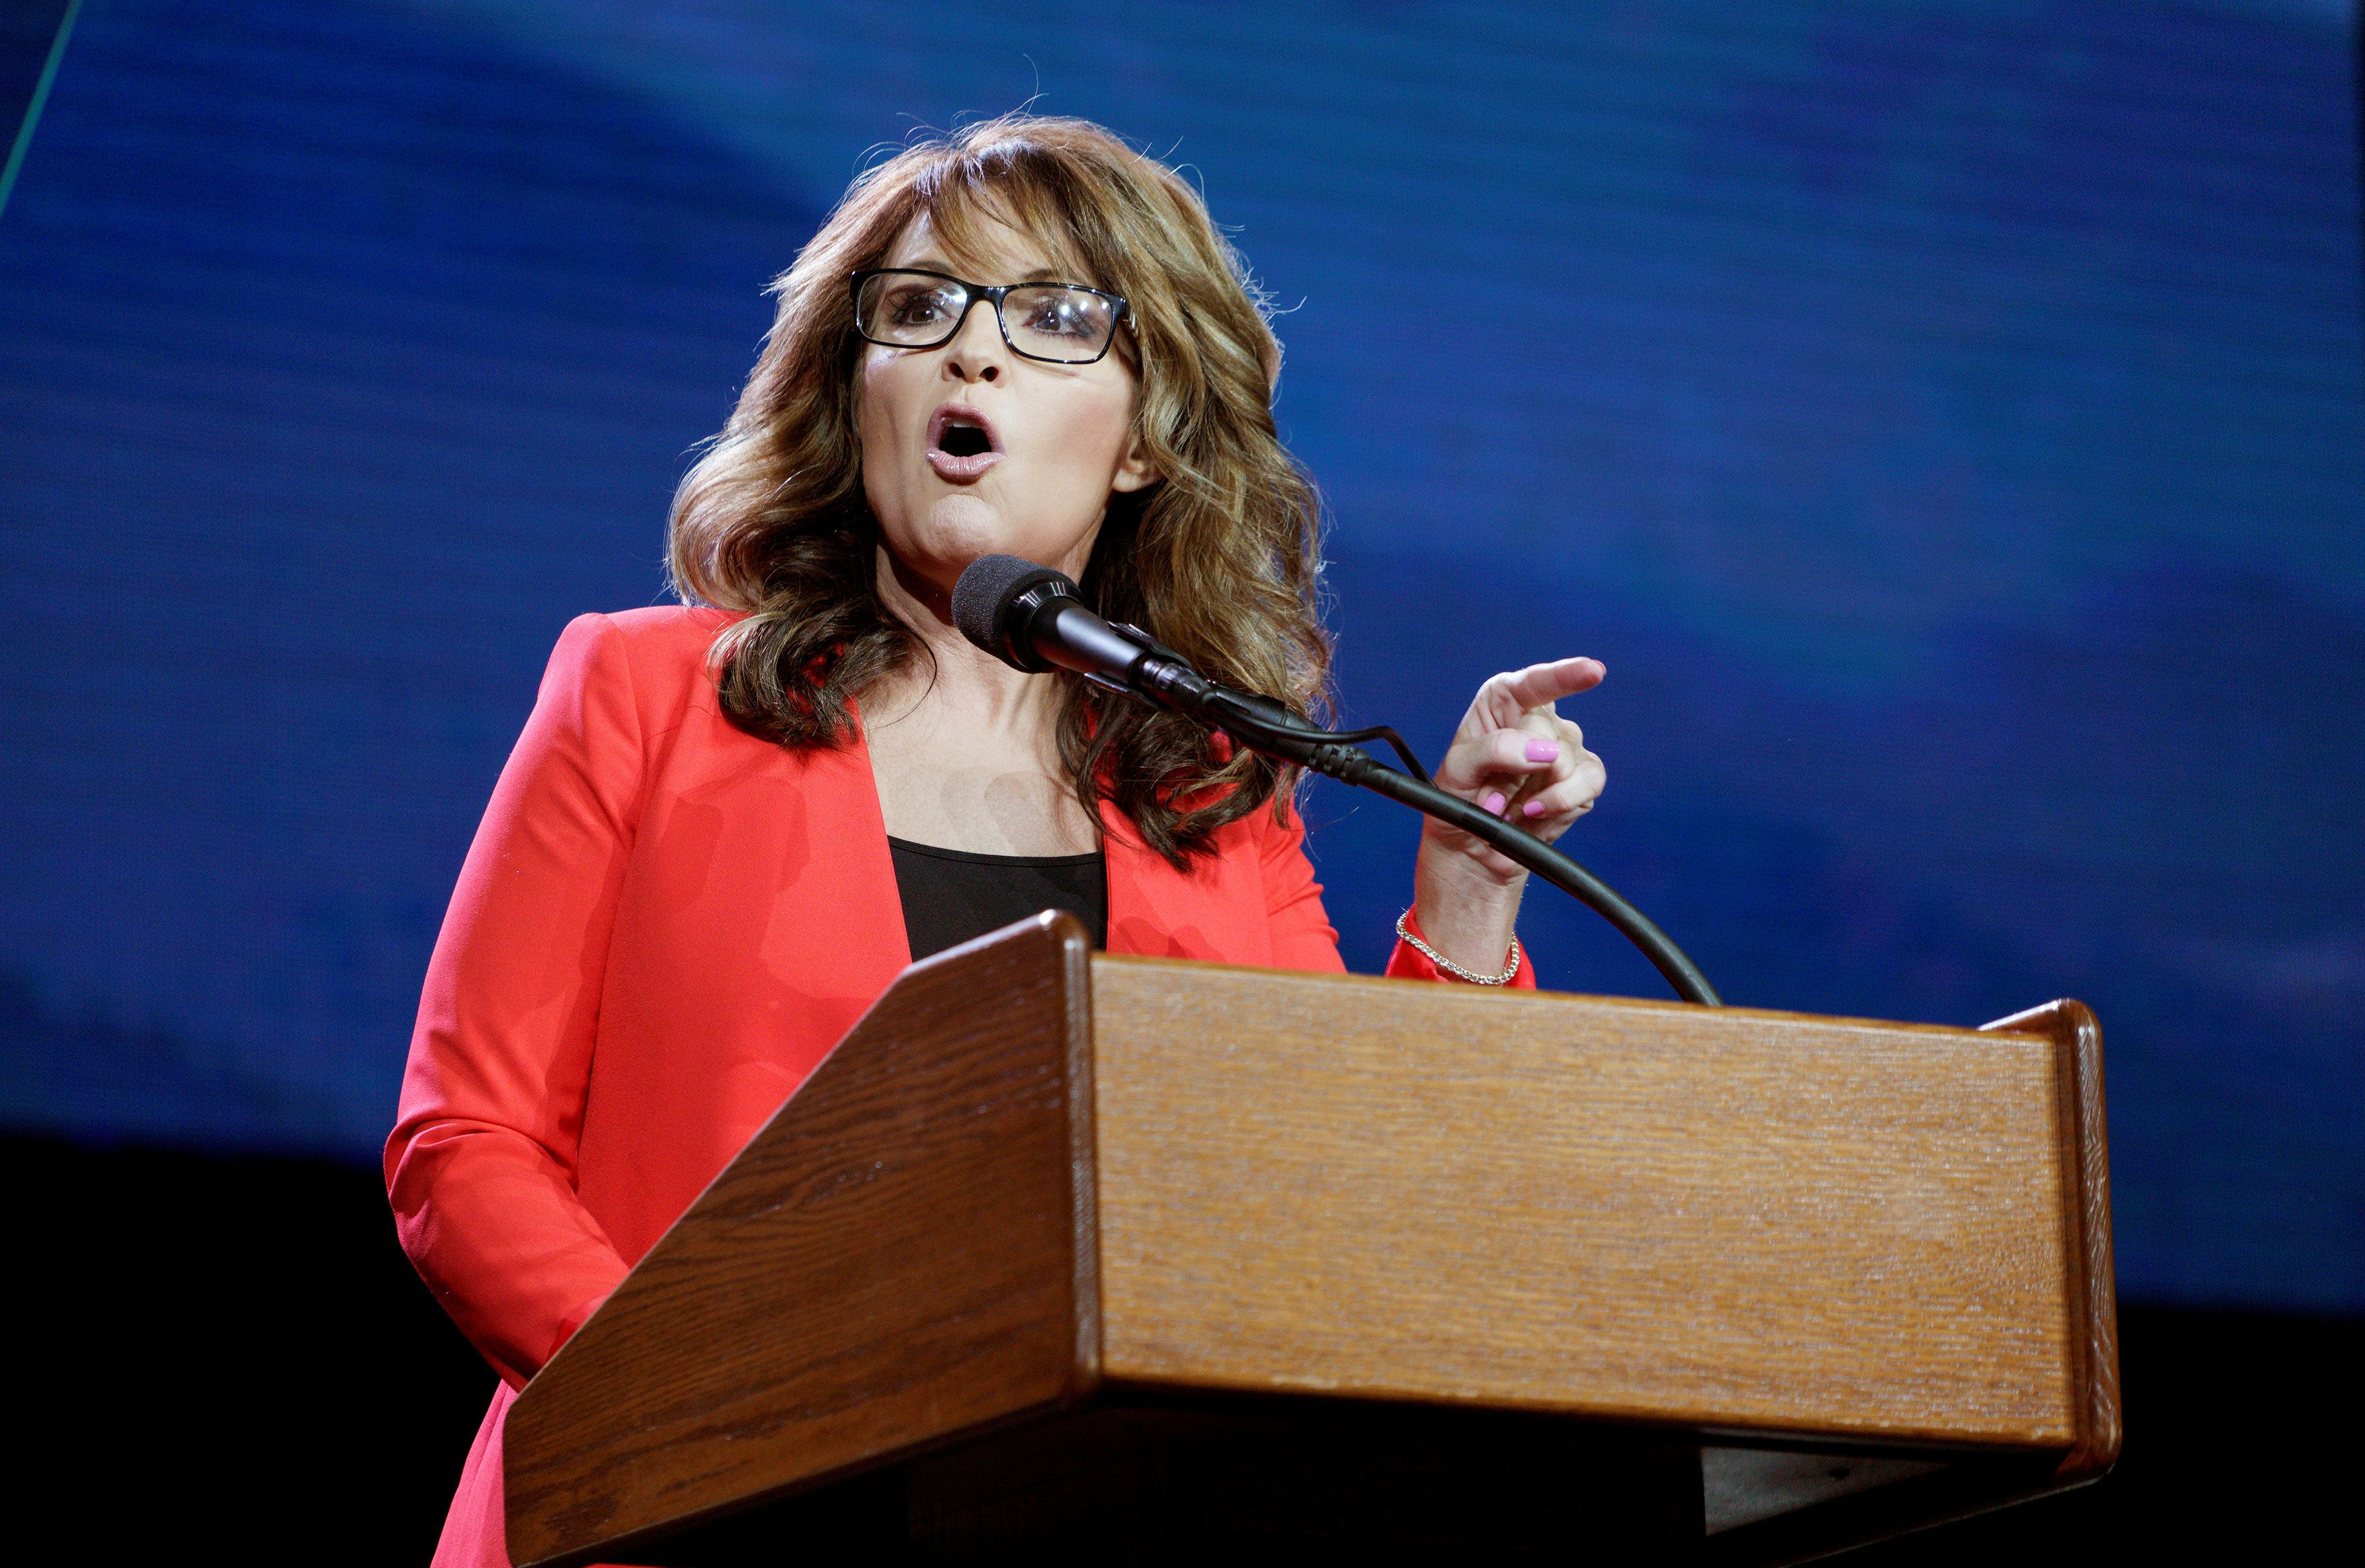 Sarah Palin speaks at the Western Conservative Summit in Denver, Colorado, U.S., July 1, 2016. REUTERS/Rick Wilking